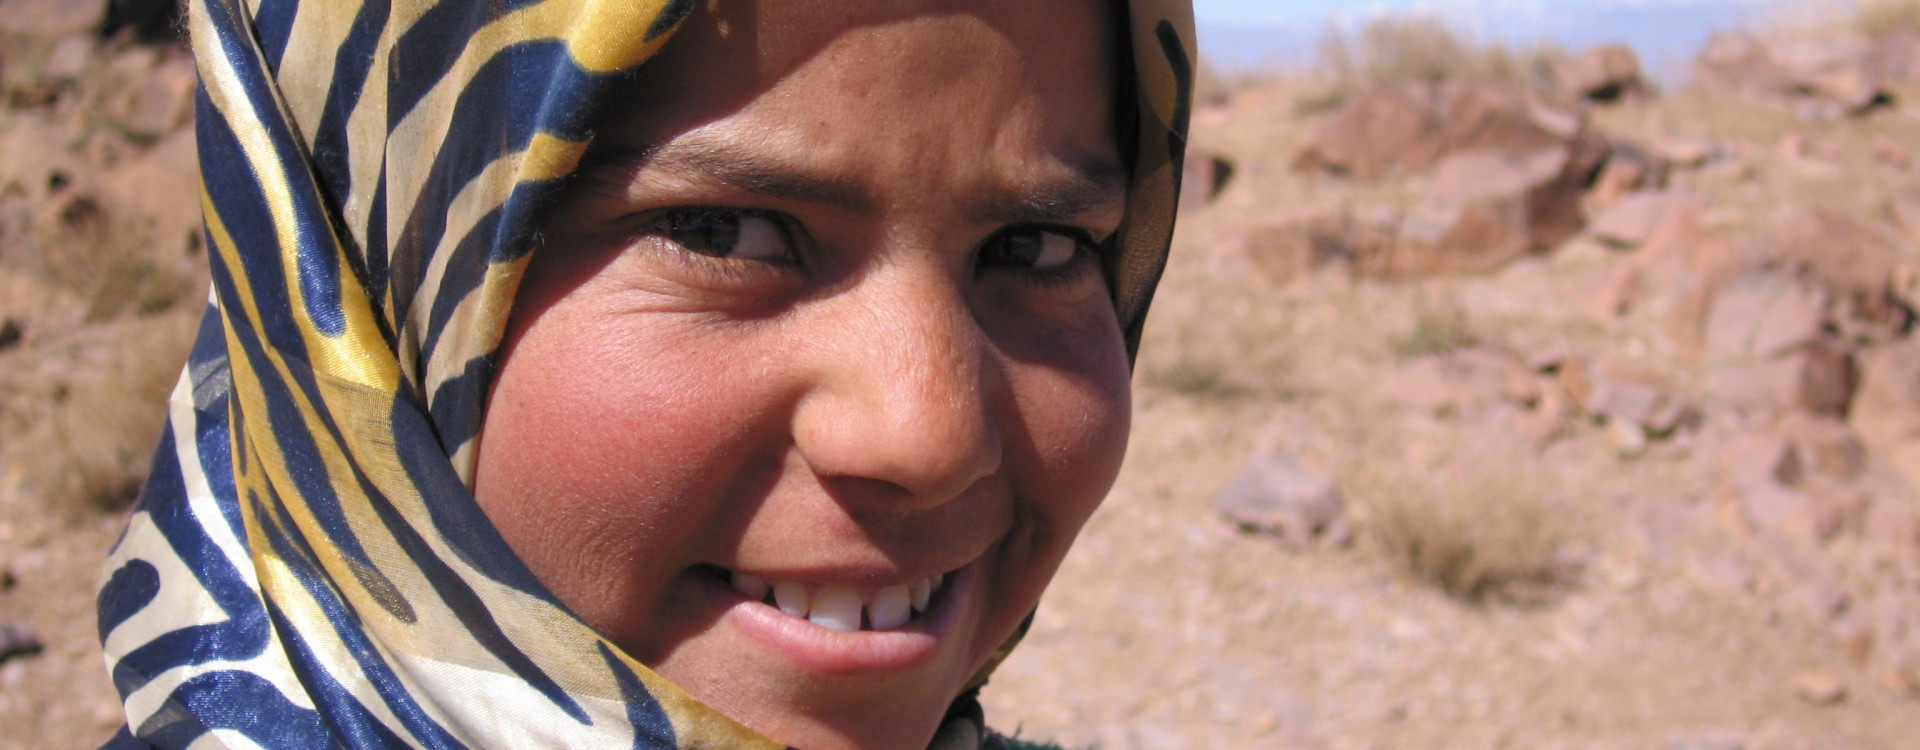 Berber girl in the Jebel Sahro